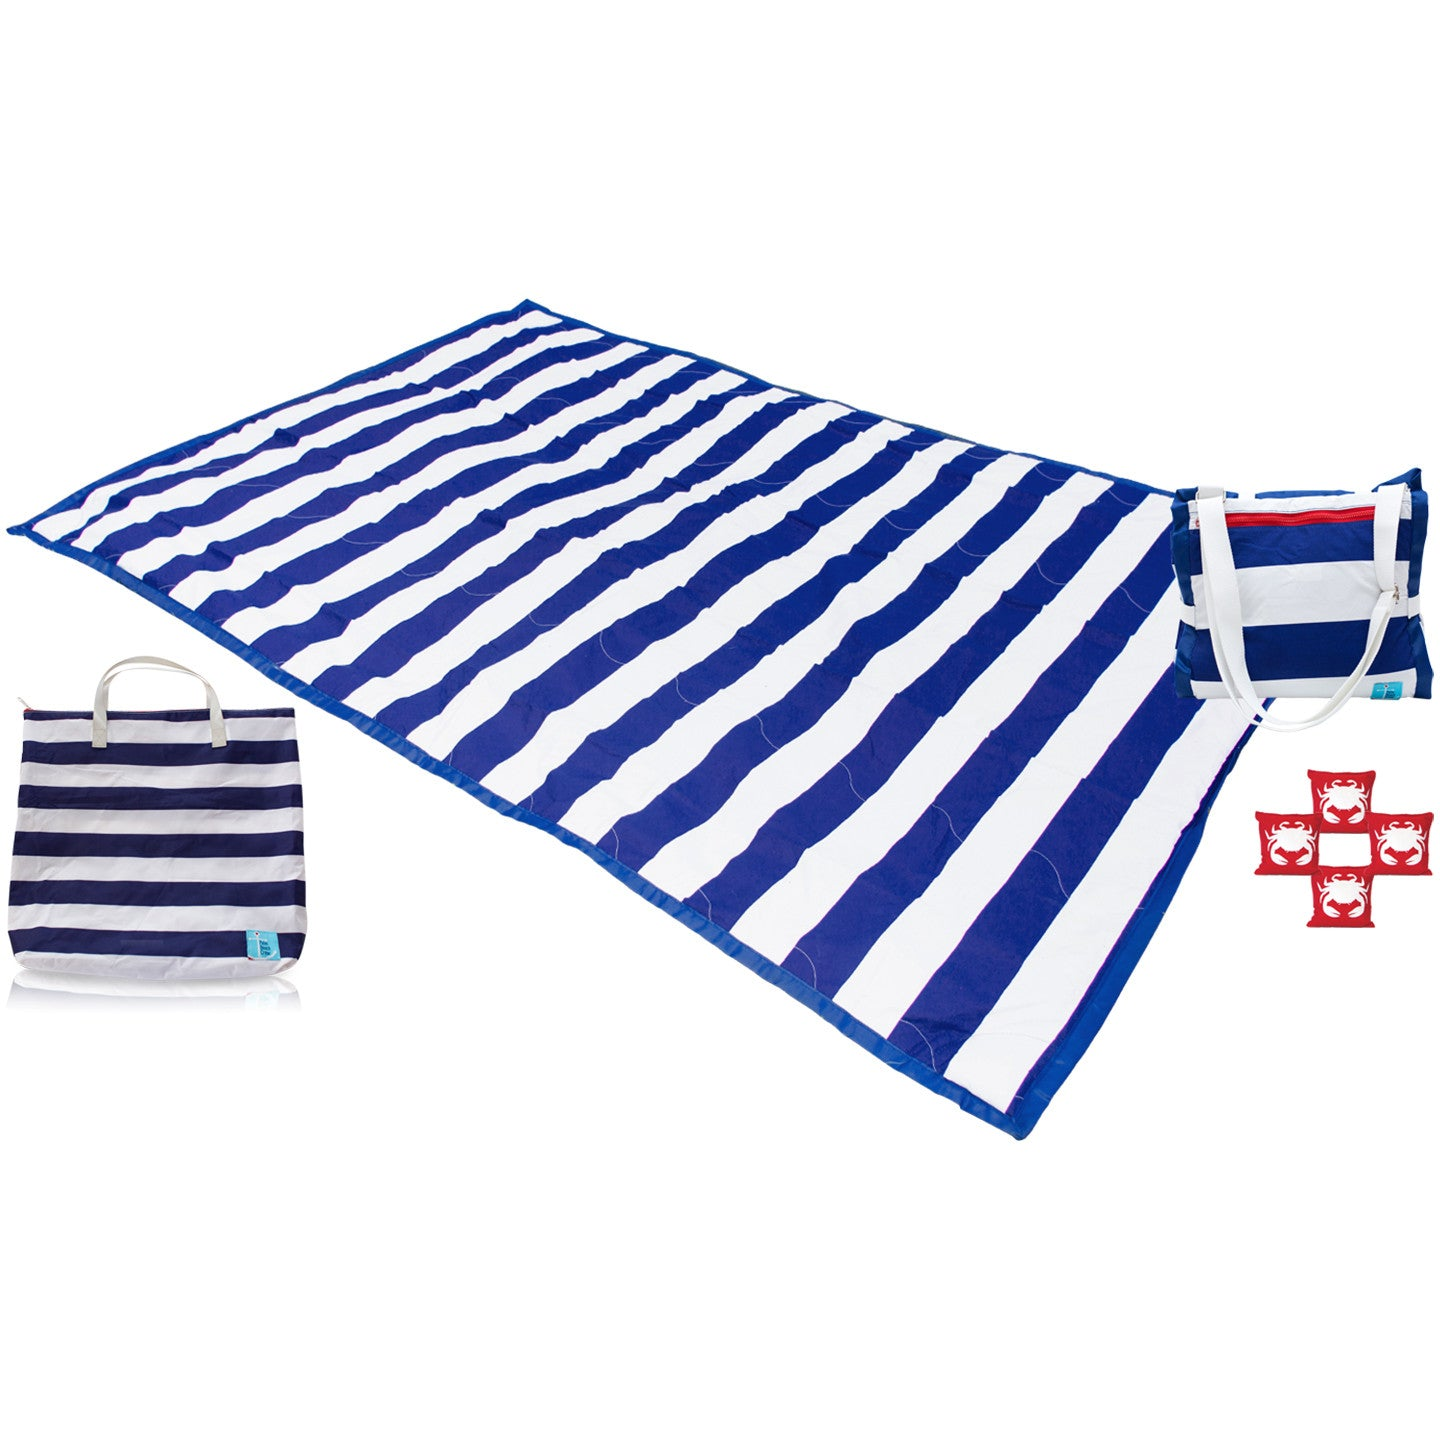 e7de510f24 Brilliant Blanket  Cabana Collection - Cabana Blue. Palm Beach Crew